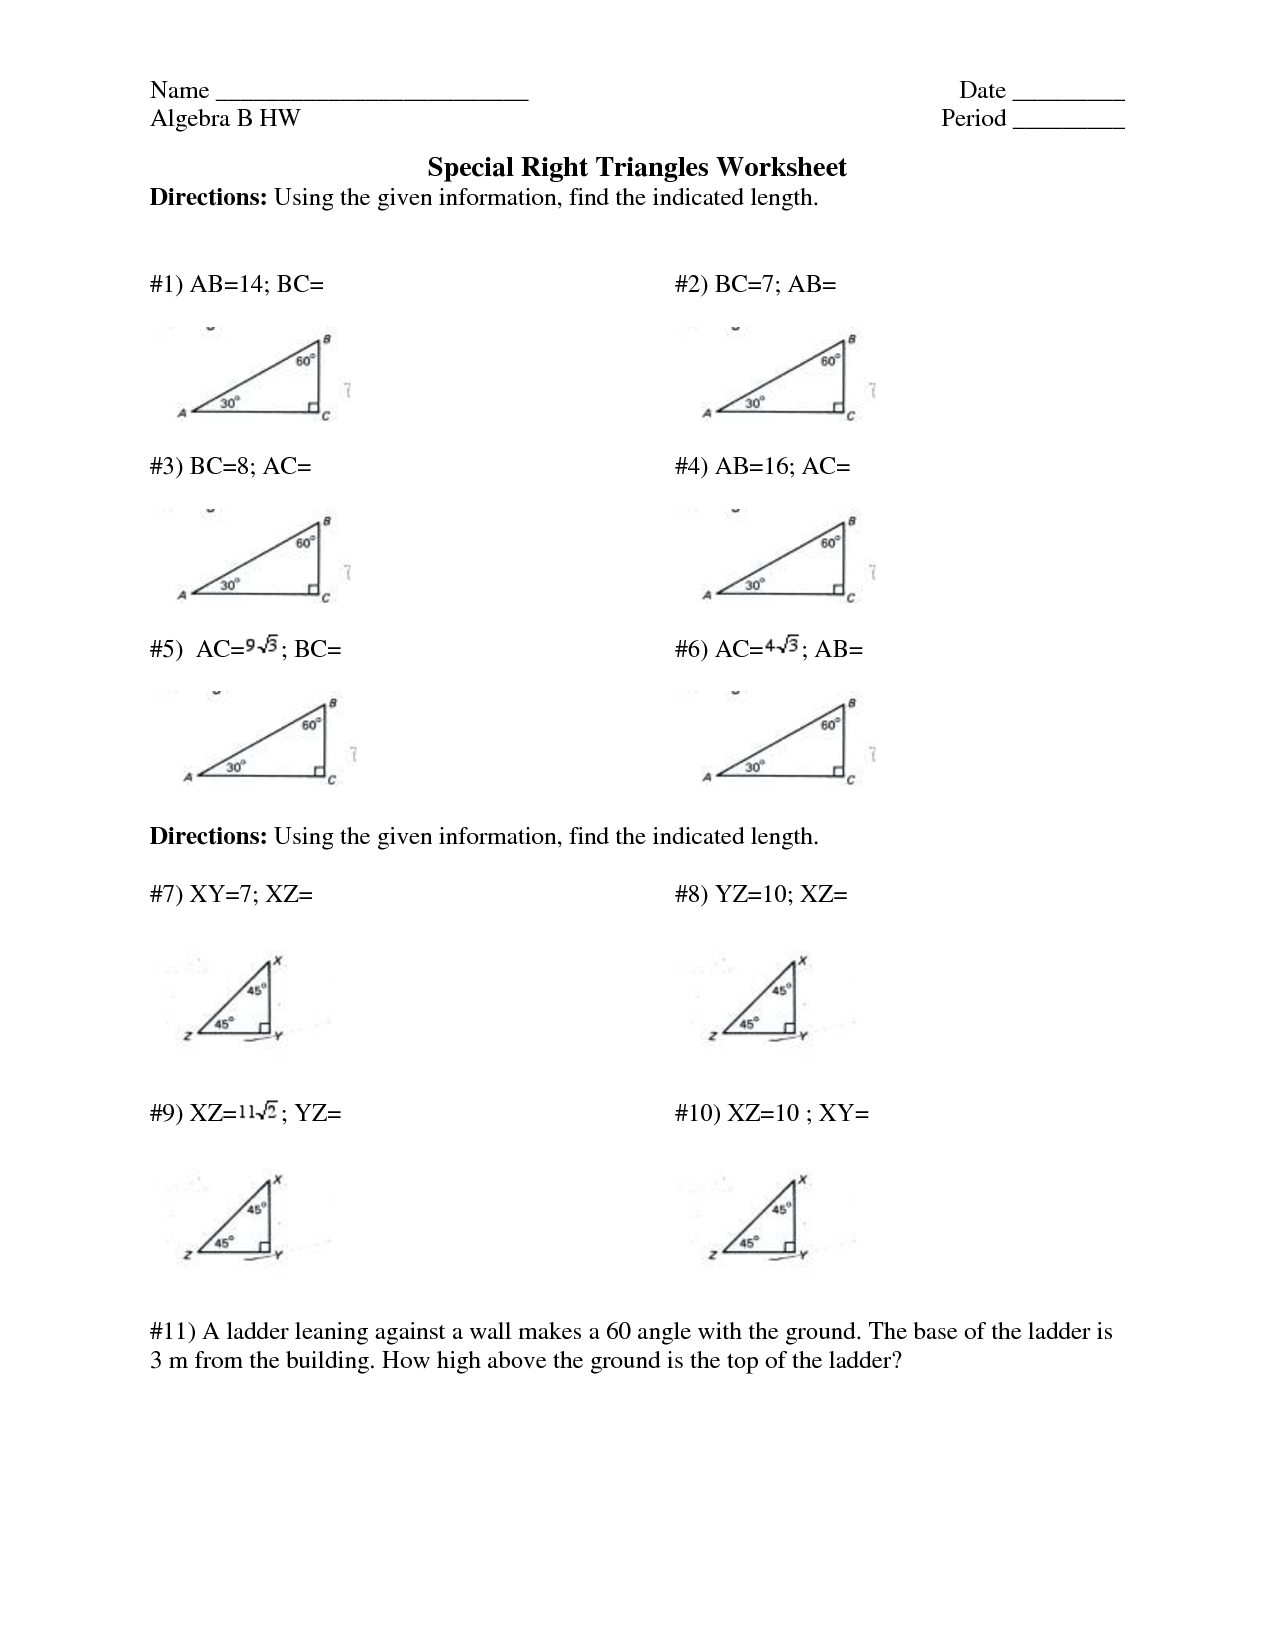 Special Right Triangles Worksheet Page 24